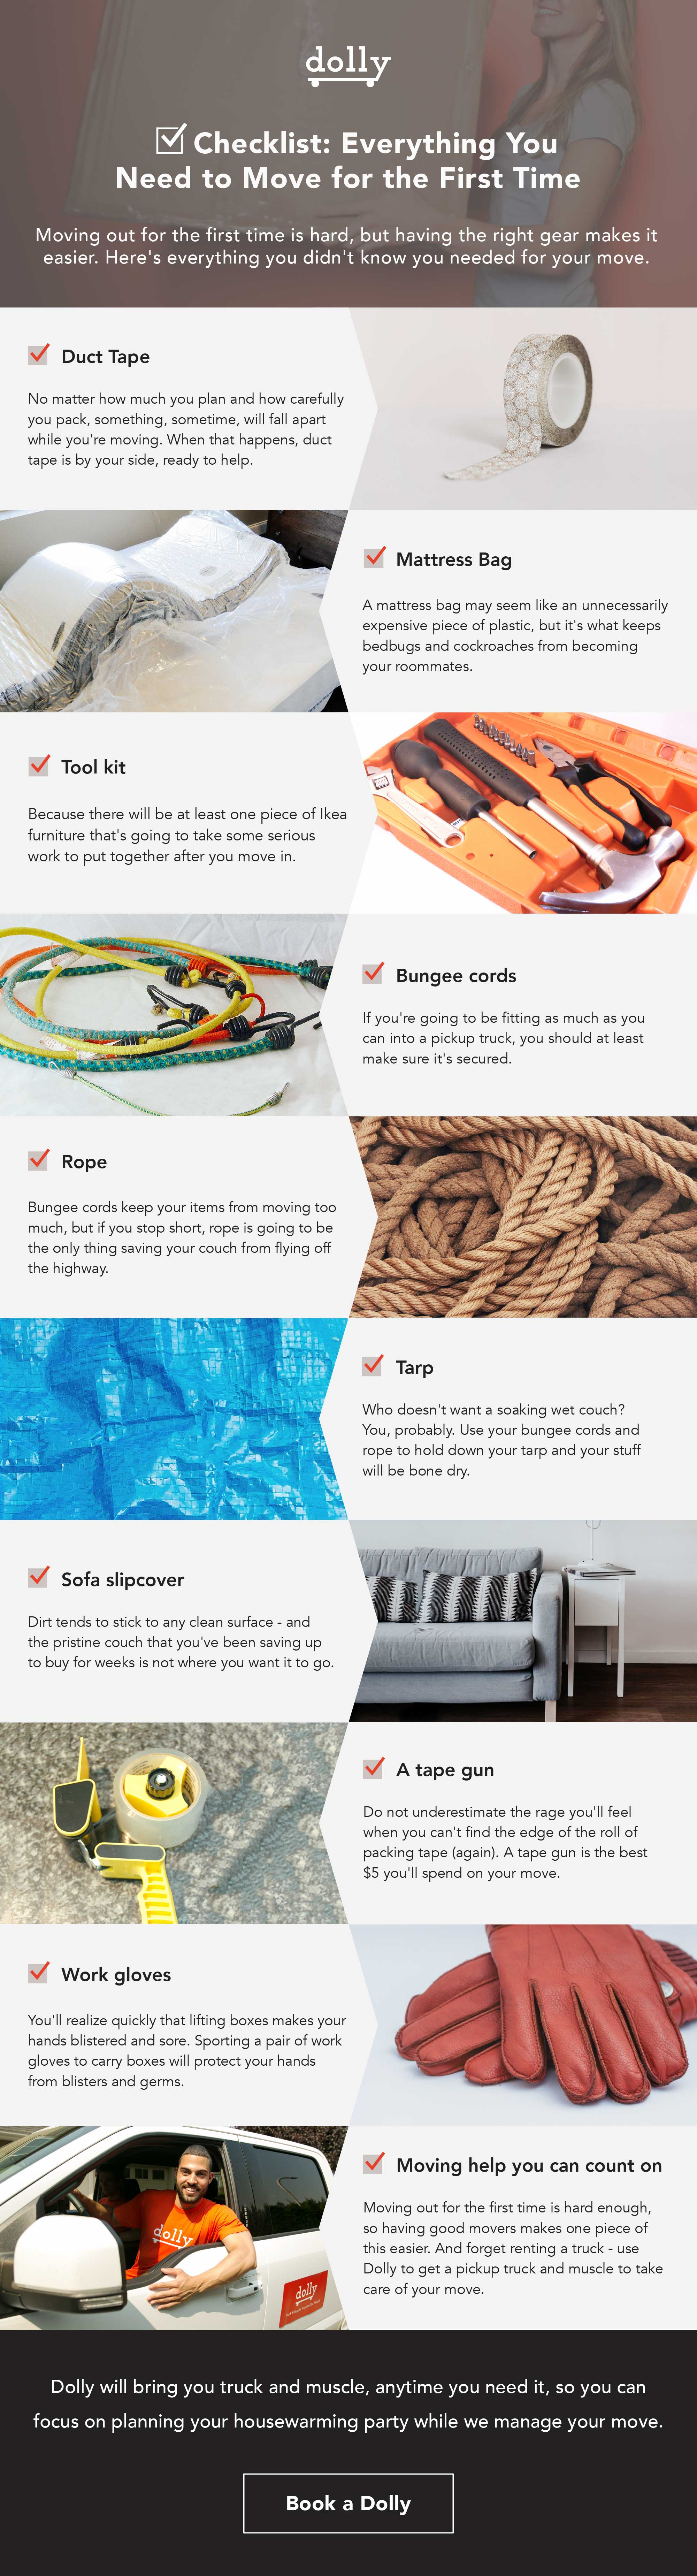 Checklist for everything you need to move for the first time, including duct tape, mattress bag, tool kit, bungee cords, rope, tarp, couch slipcover, tape gun, work gloves, and moving help you can count on like Dolly.